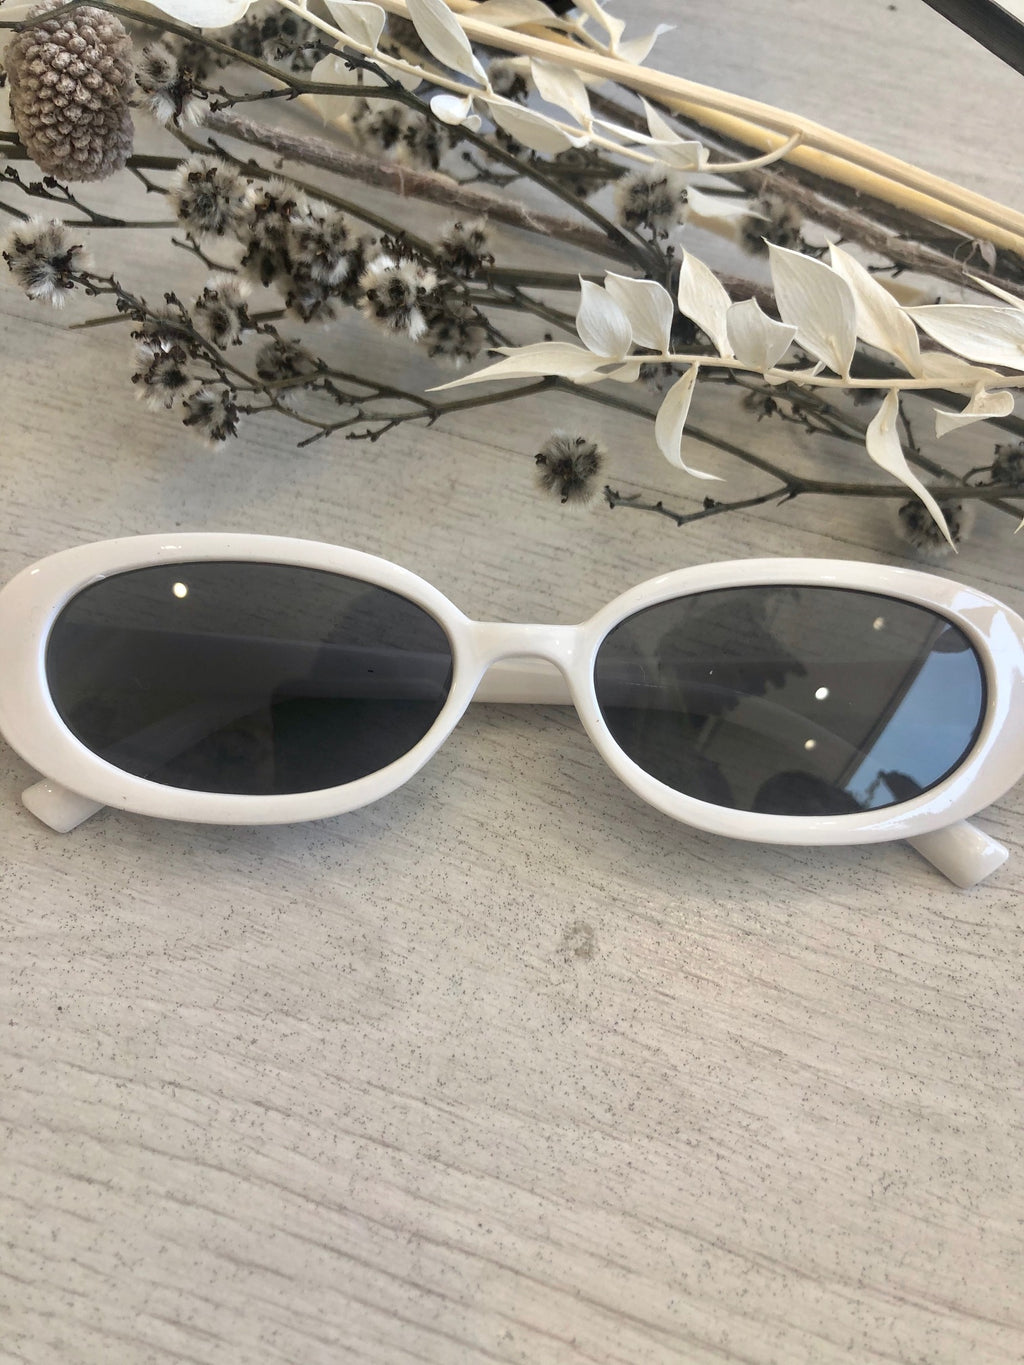 tlb house - daisy sunglasses - white